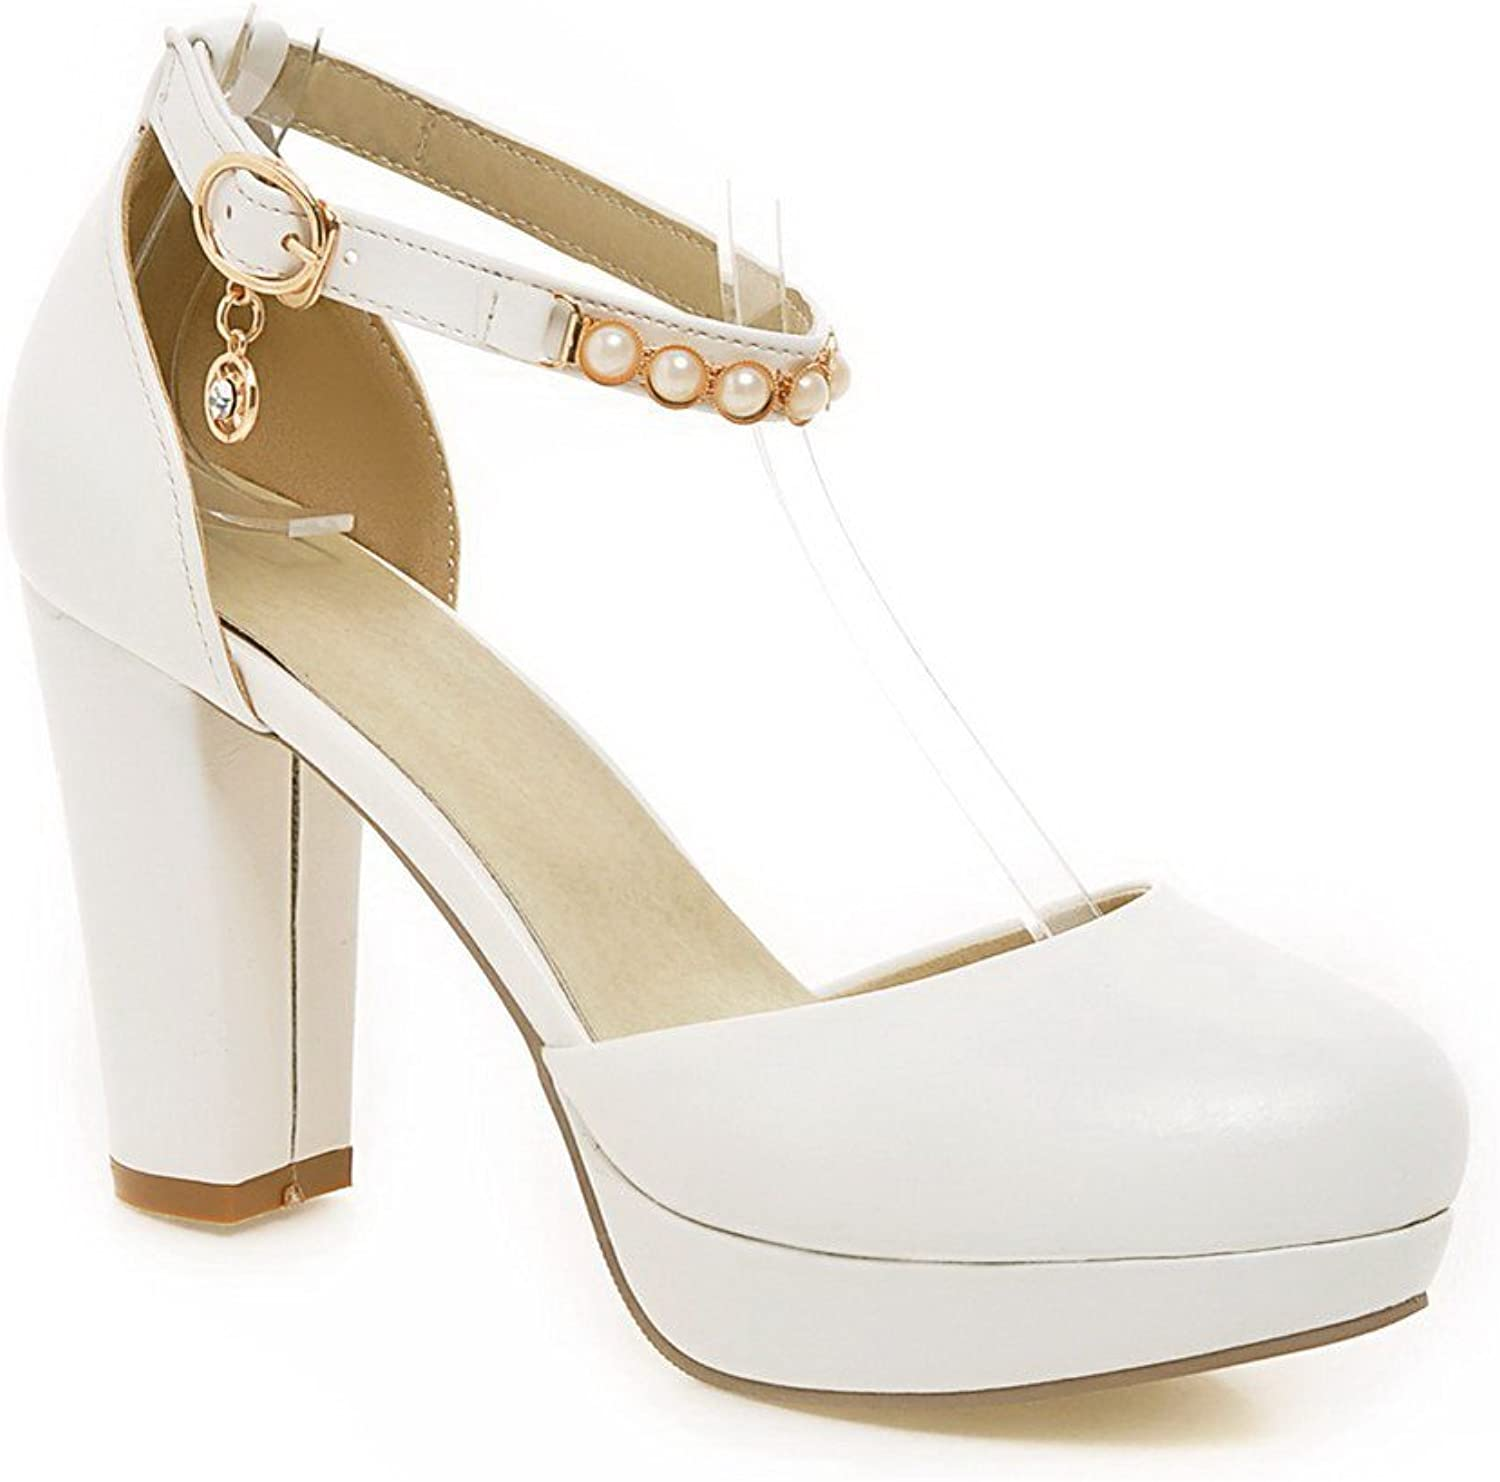 WeenFashion Women's Buckle High Heels Pu Solid Round Closed Toe Pumps shoes